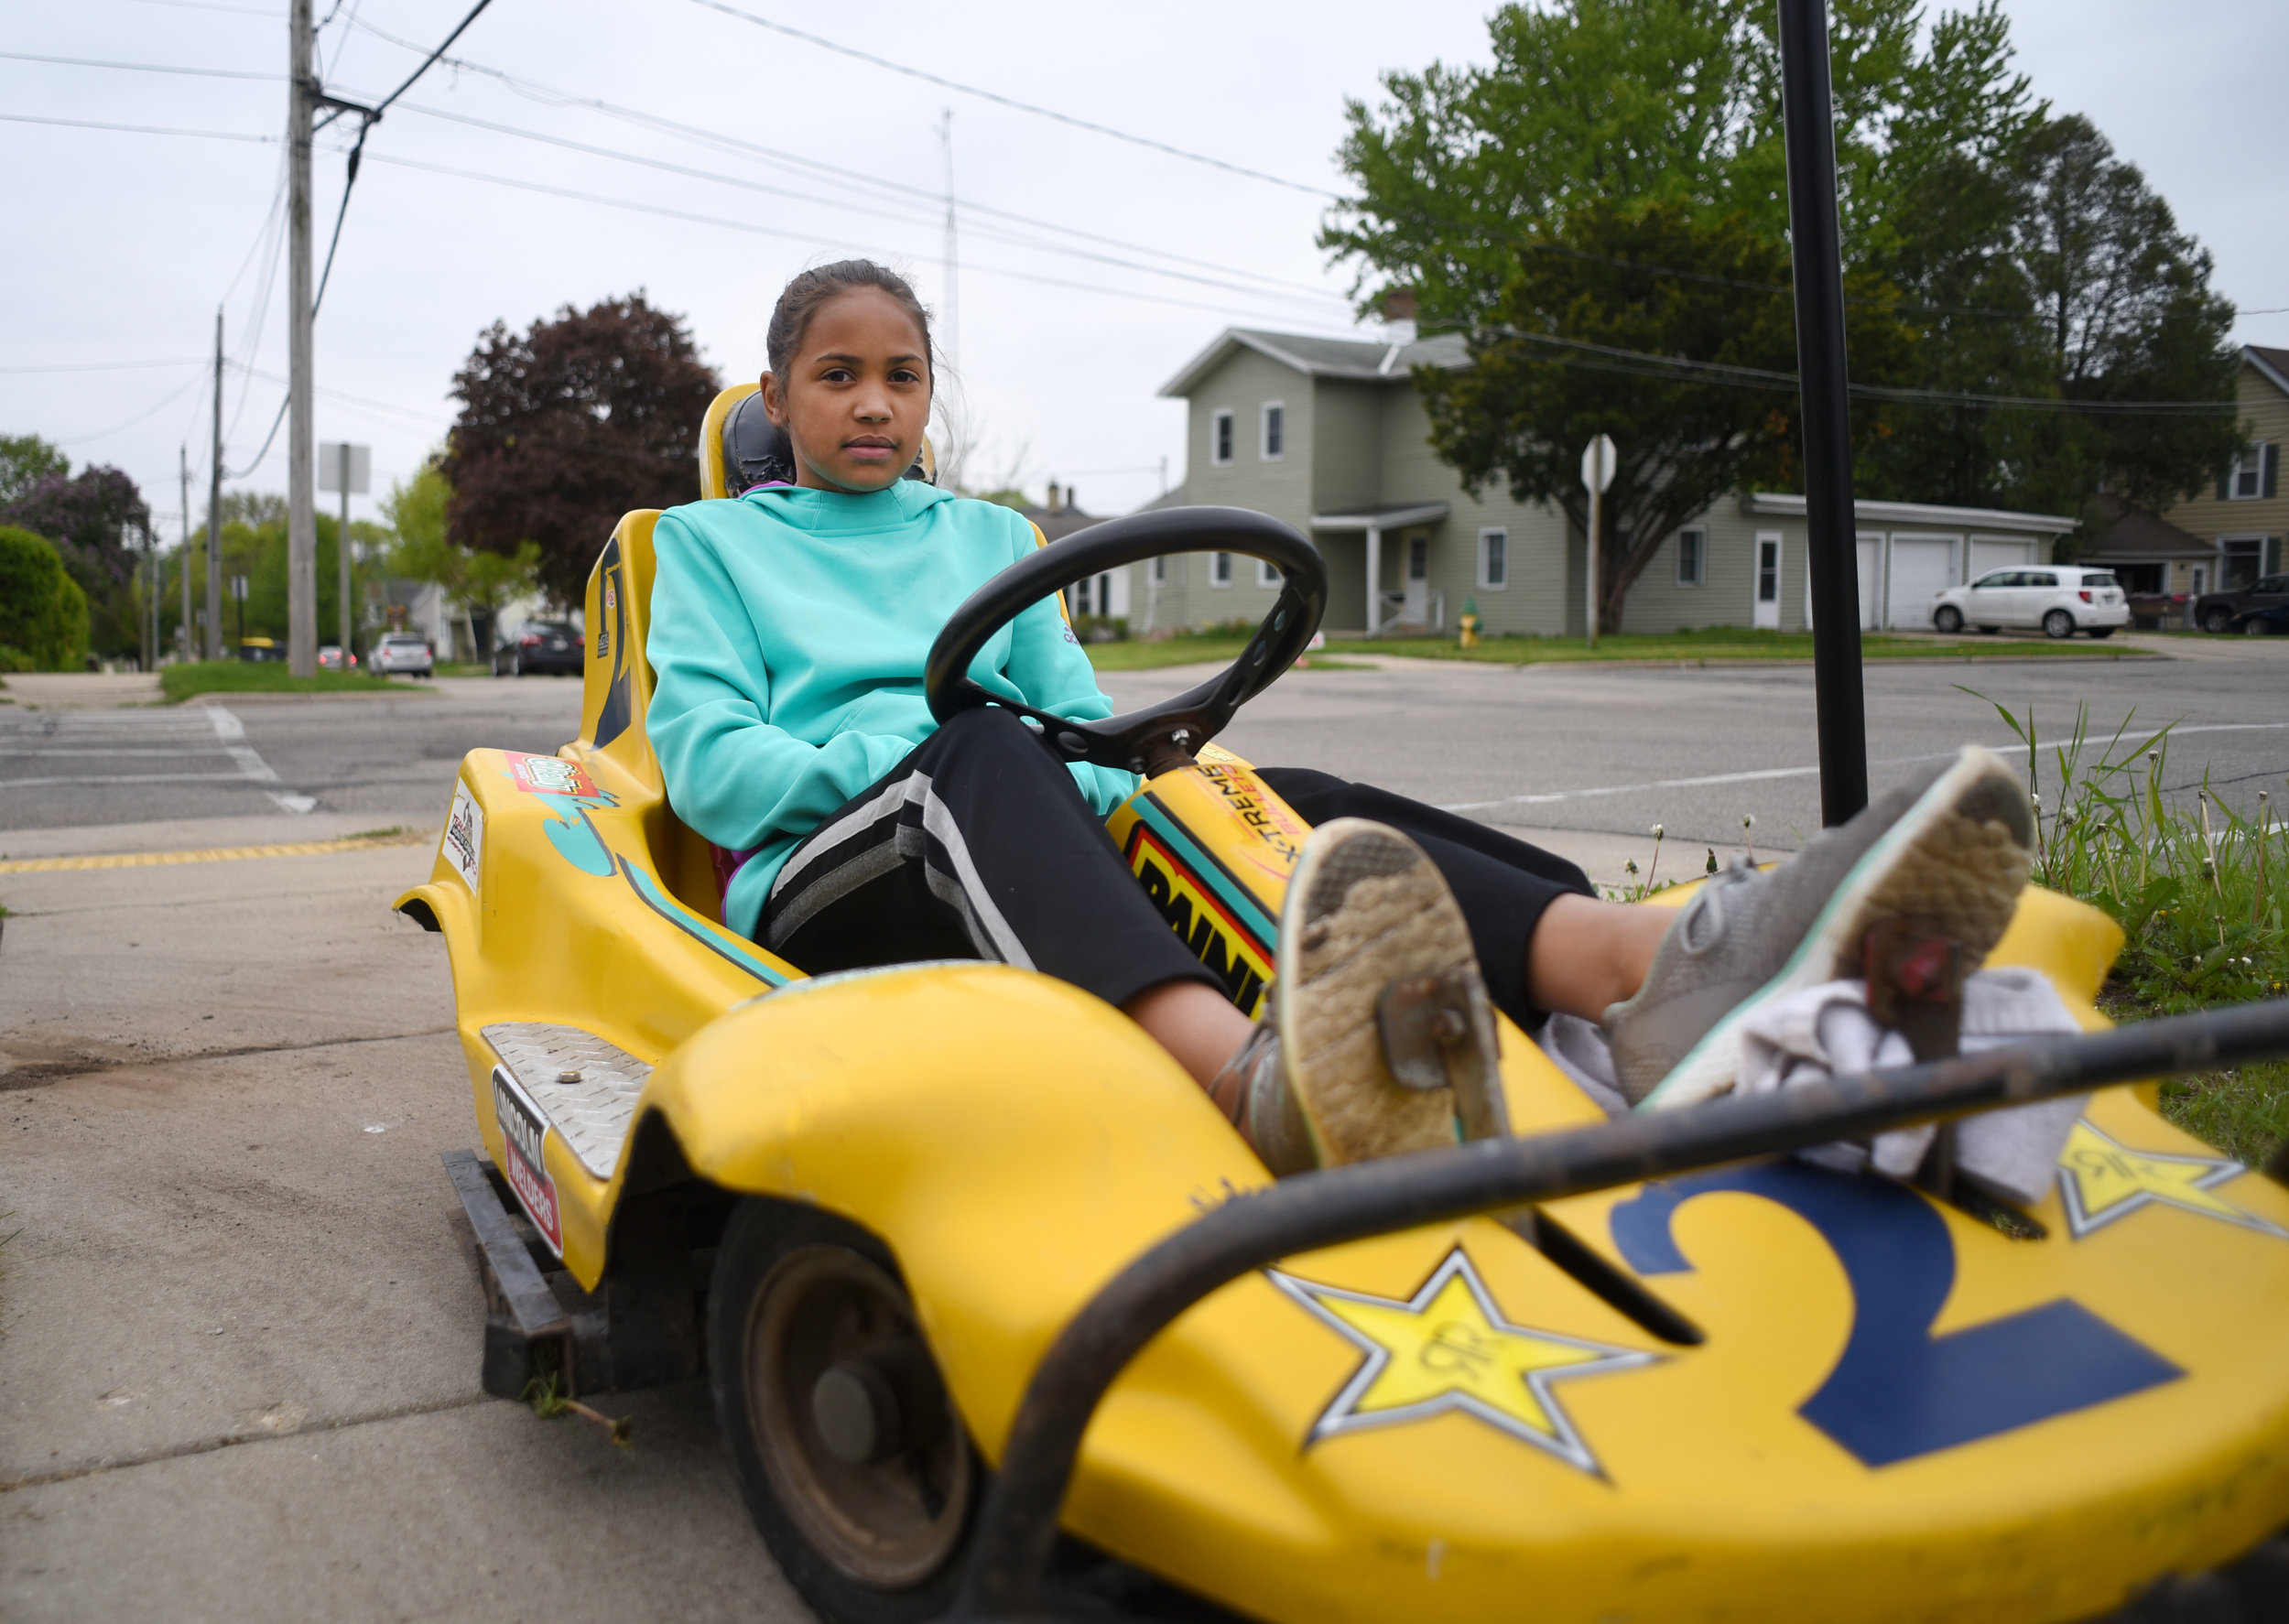 Alexus Schultz, 10,rides her go-kart in front of her house after school May 9, 2017. Schultz has had her go-kart for about a year, after getting it last year for her birthday. Schultz had always wanted a go-kart and tries to rides it almost every day.